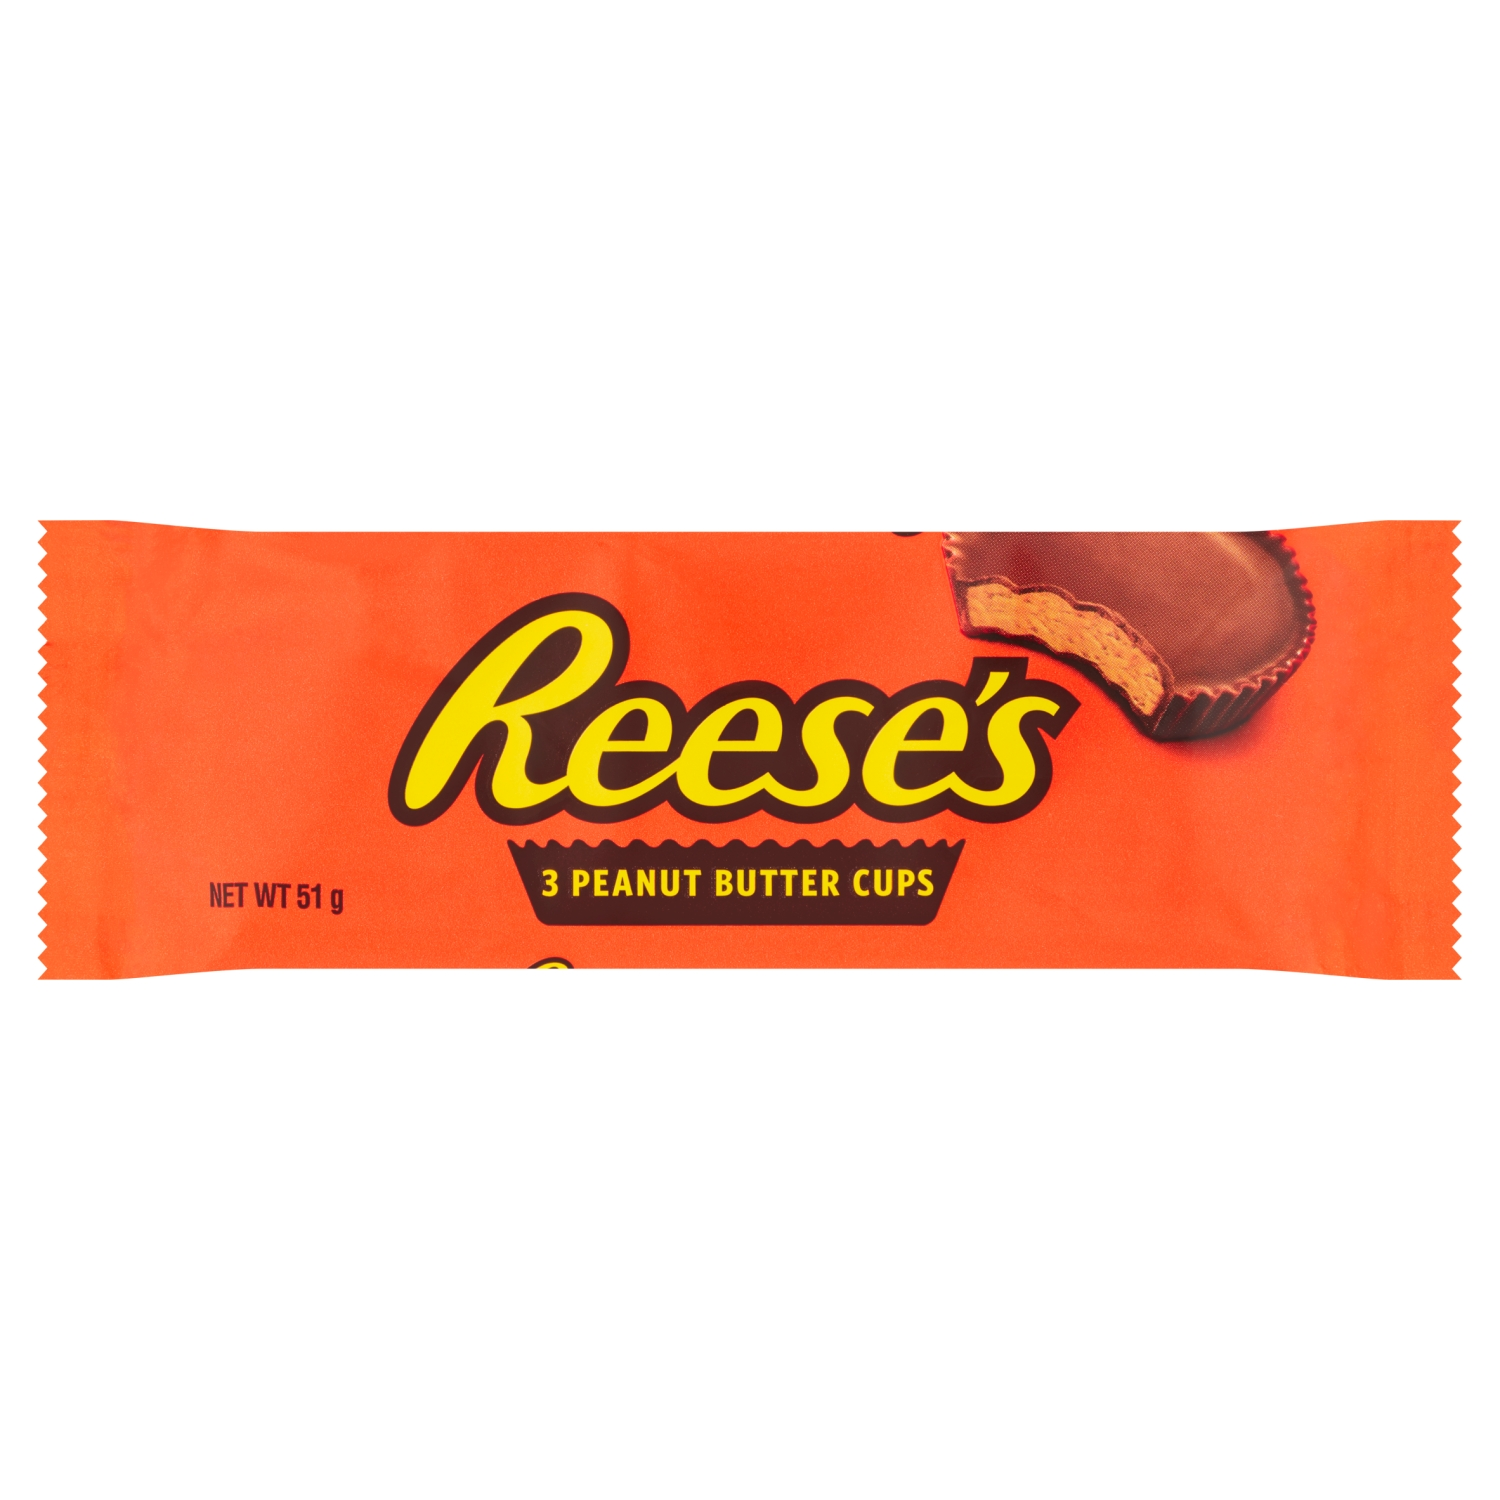 Reese's Peanut Butter Cups 3 Pack 51g